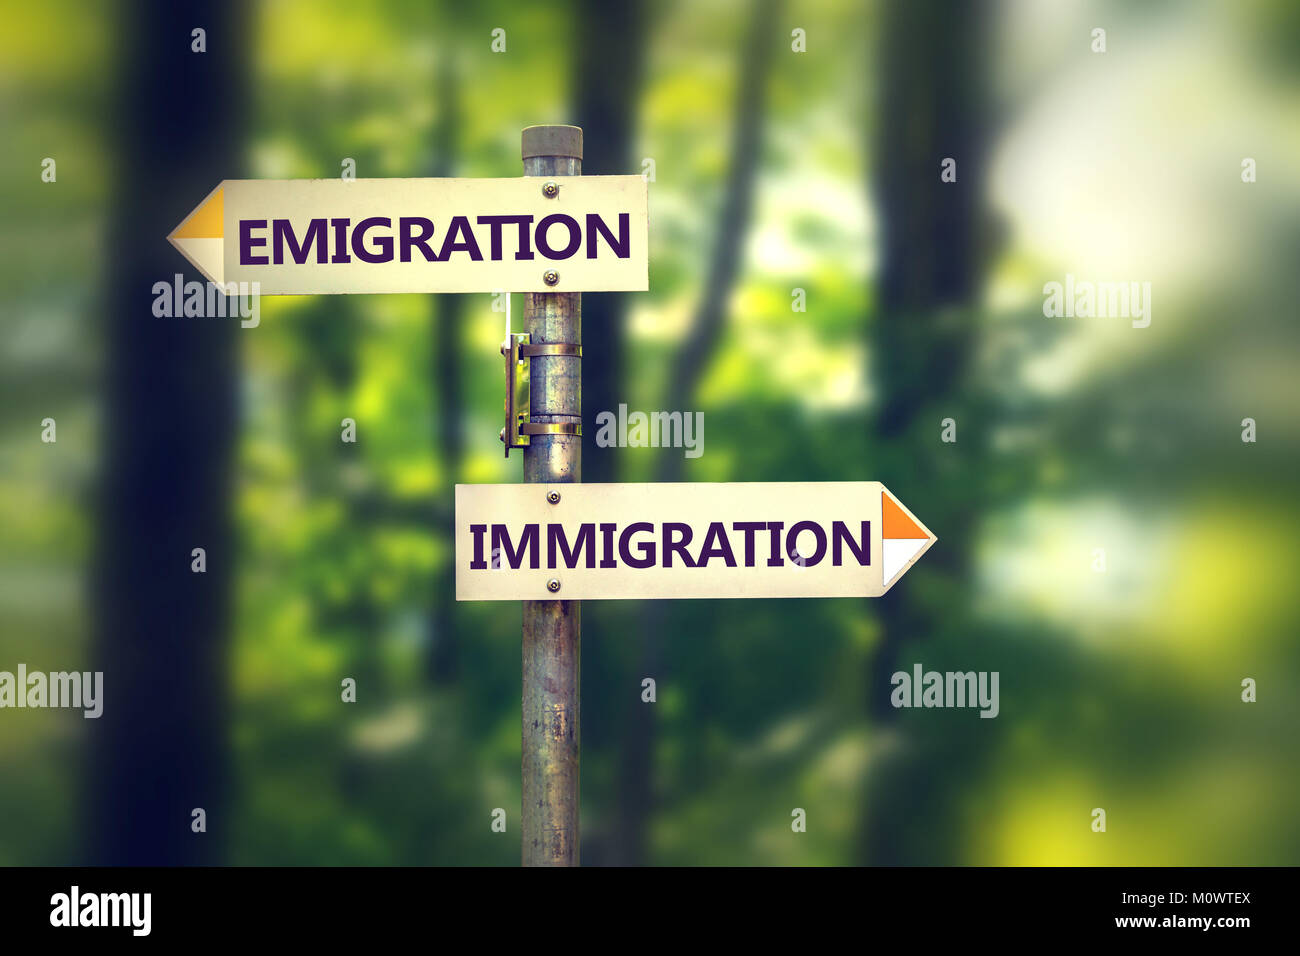 Pole with guiding tablets offering choice between emigration and migration. - Stock Image